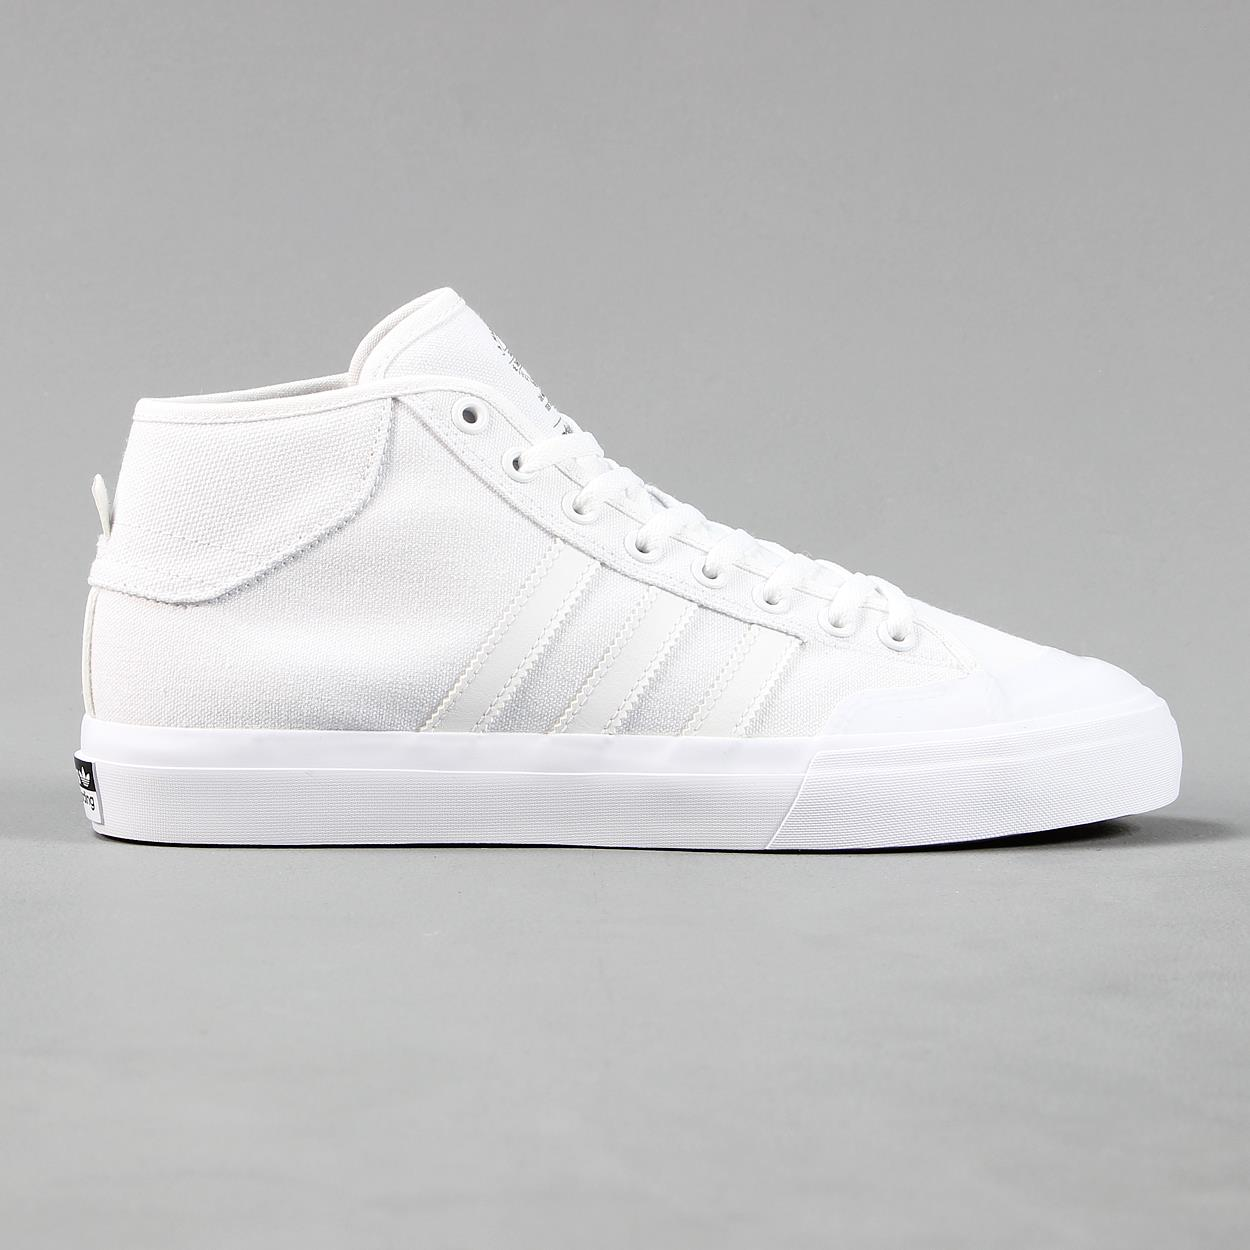 098e2be050 Image is loading Adidas-Skateboarding-Matchcourt-Mens-Mid-Tops-White-Canvas-